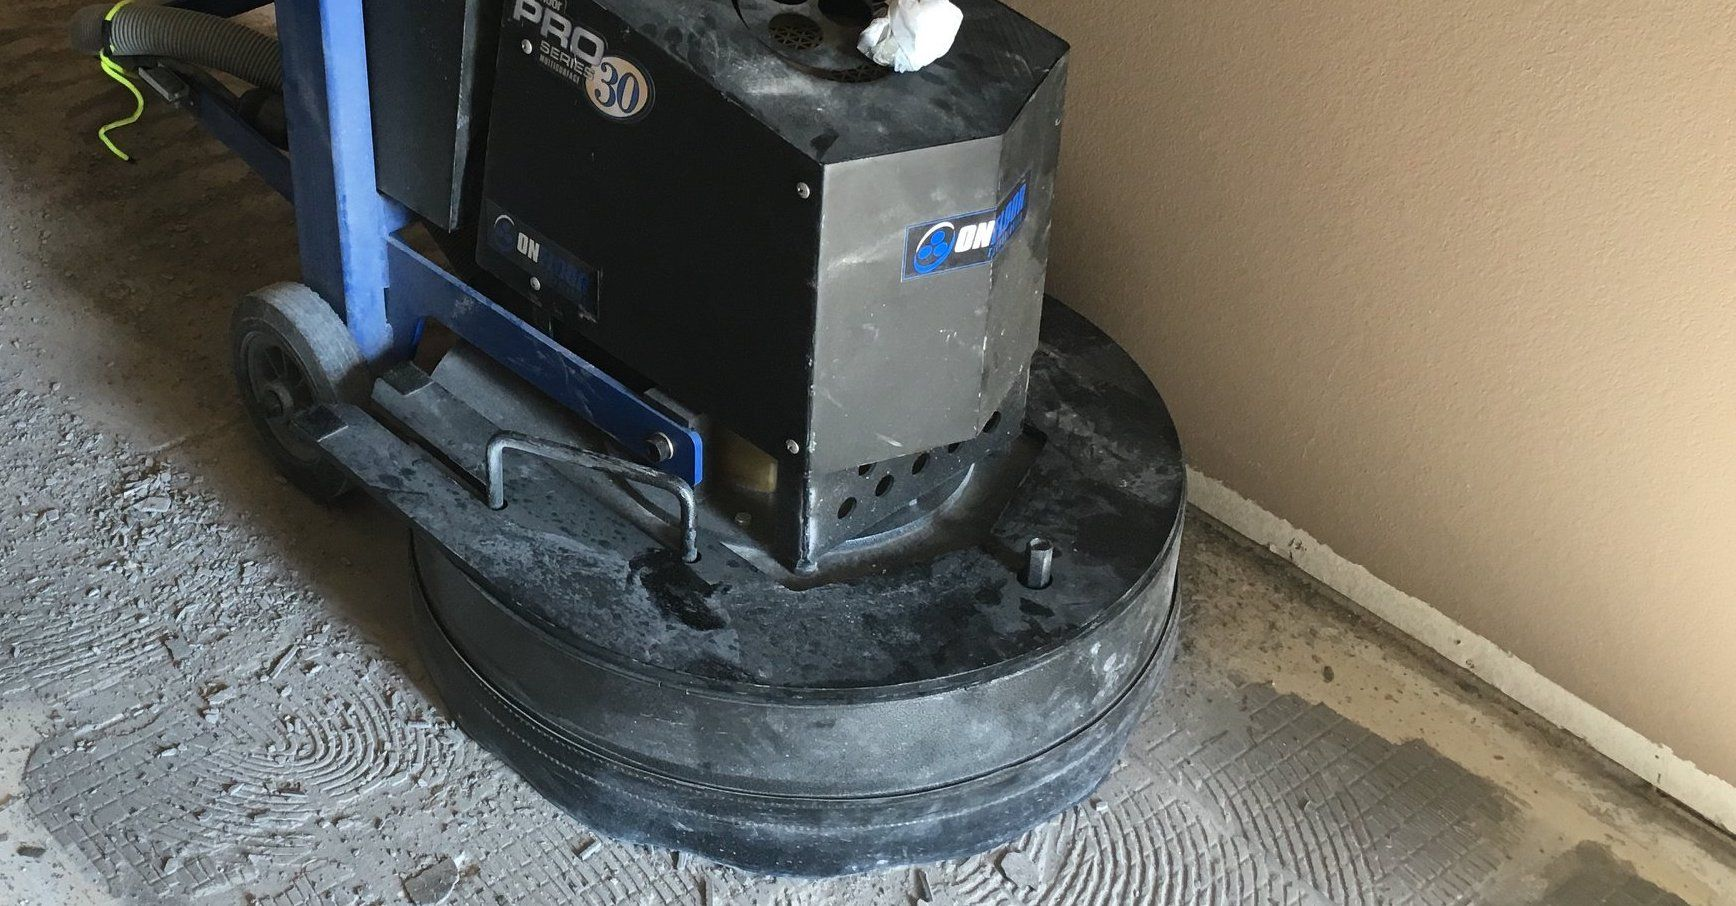 Concrete Grinding and Polishing Must-Know Best Practices